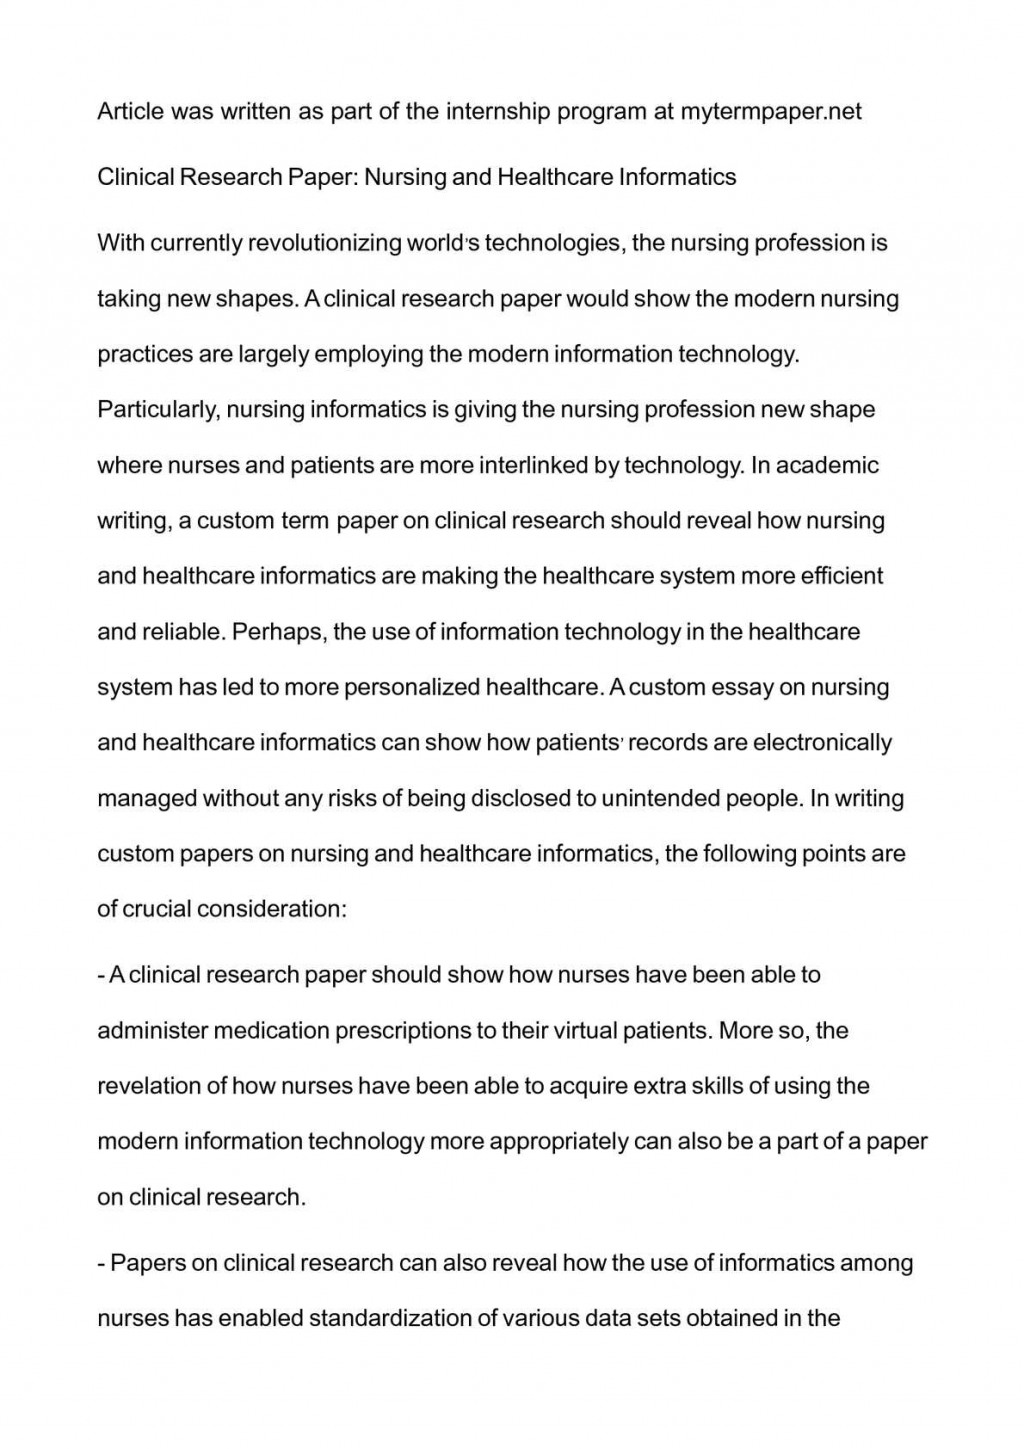 002 P1 Research Paper About Phenomenal Bullying Slideshare Chapter 2 On Cyberbullying Pdf Large